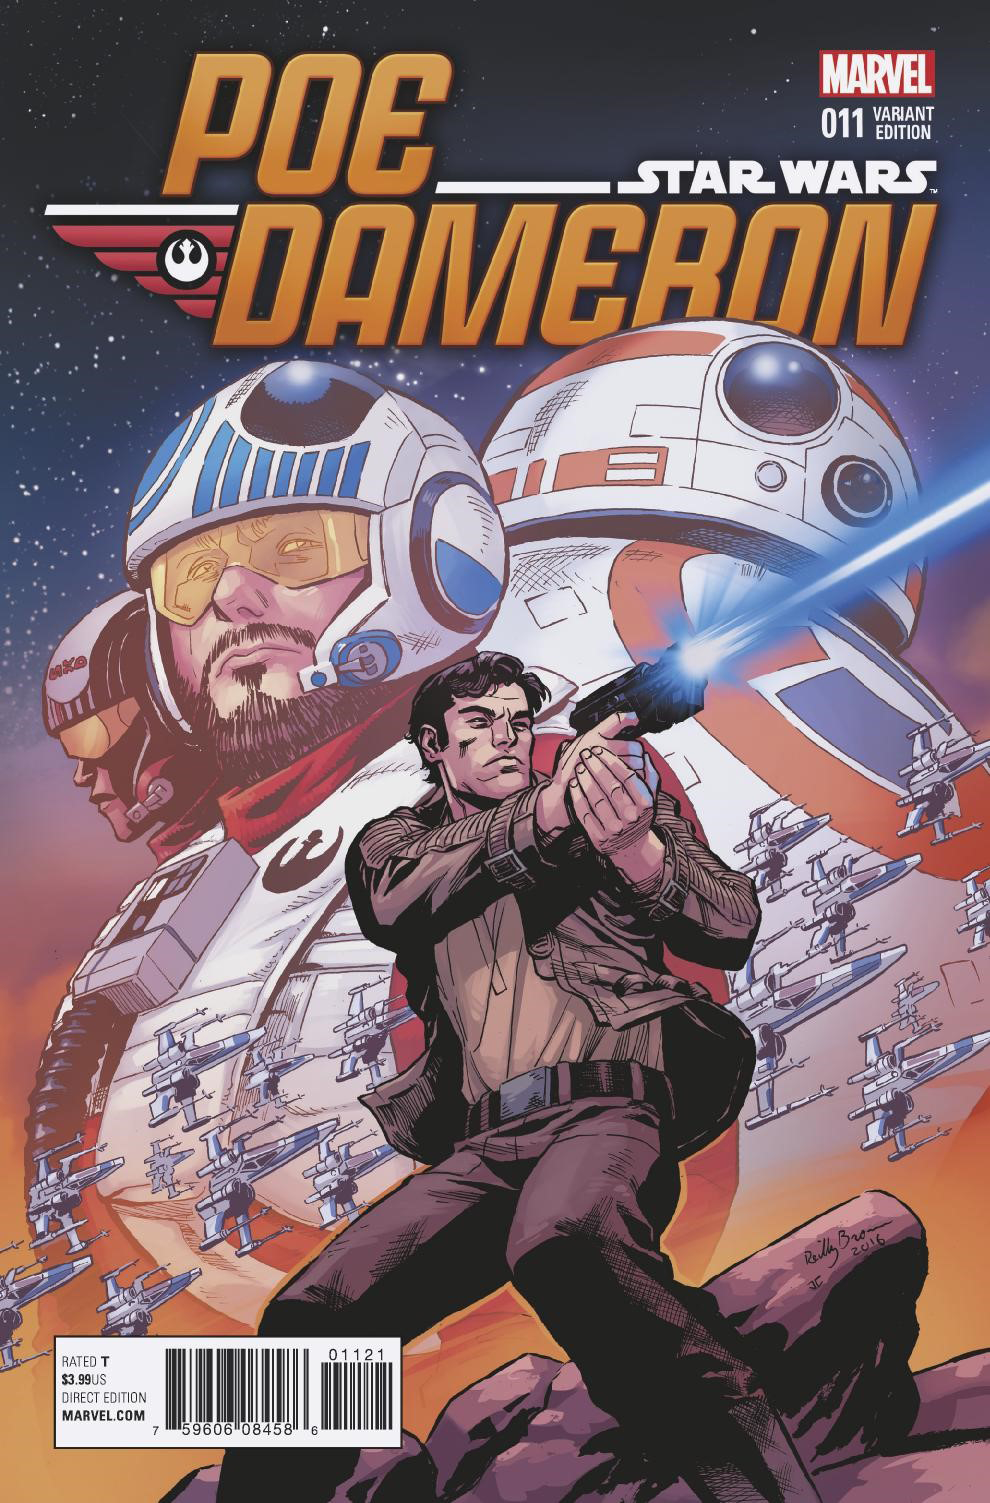 Poe Dameron #11 (Reilly Brown Variant Cover) (15.02.2017)